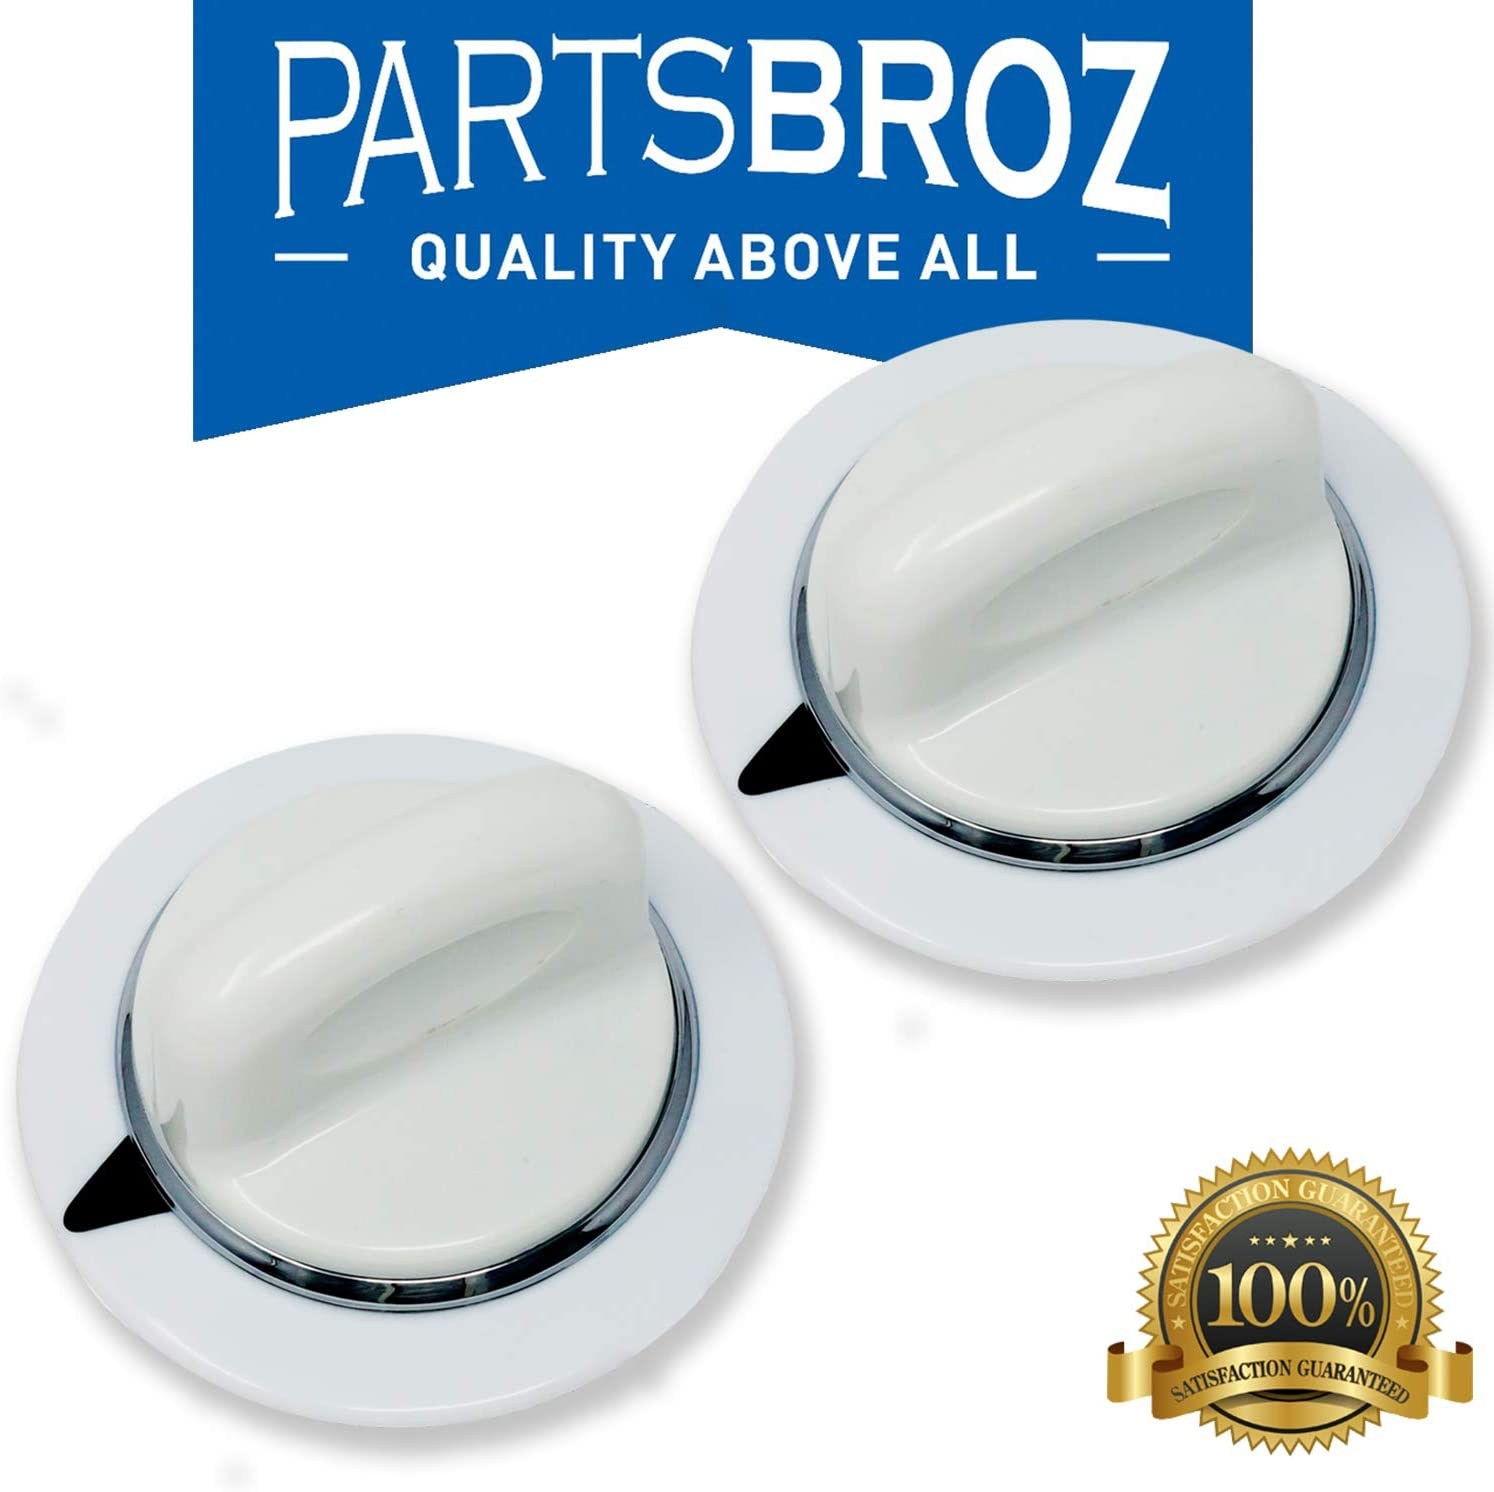 WE1M654 White Timer Knob Replacement for General Electric (GE) Dryers by PartsBroz - Replaces AP3995088, 1264290, AH1482197, EA1482197, PS1482197, WE01M0443, WE1M443, WE1M502, WE1M668 (Pack of 2)